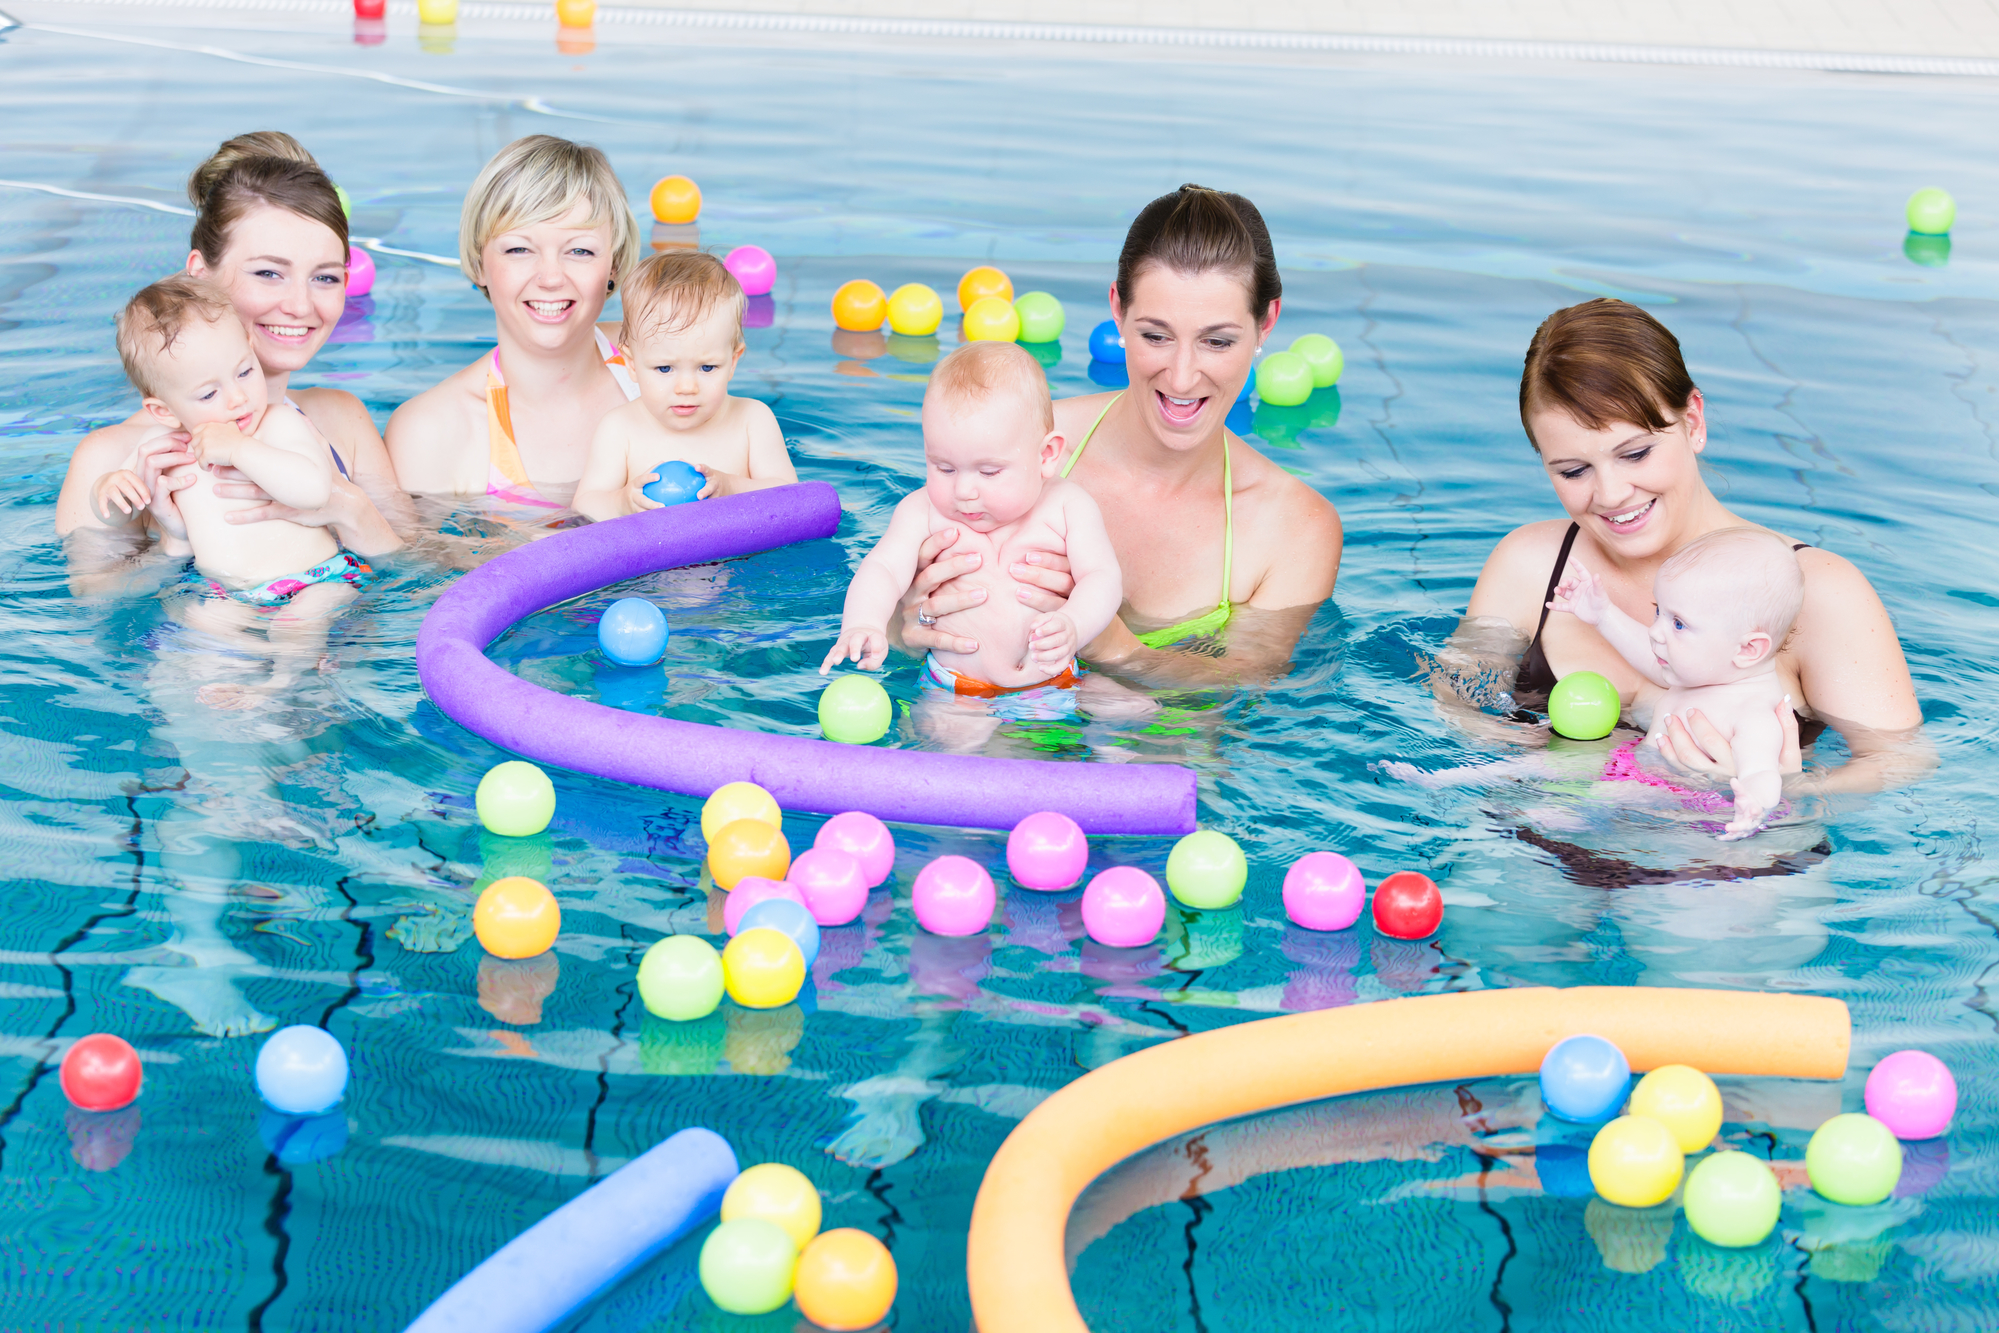 Frontier Baby Swimming - We use guided discovery, games, toys and songs to create the best swimming experience for your baby.This provides a fantastic source of stimulation for your baby's neurological and motor development. Babies have fantastic reflexes which make them naturals in the water.We use the STA Starfish series badge and certificate scheme to award your baby's progress